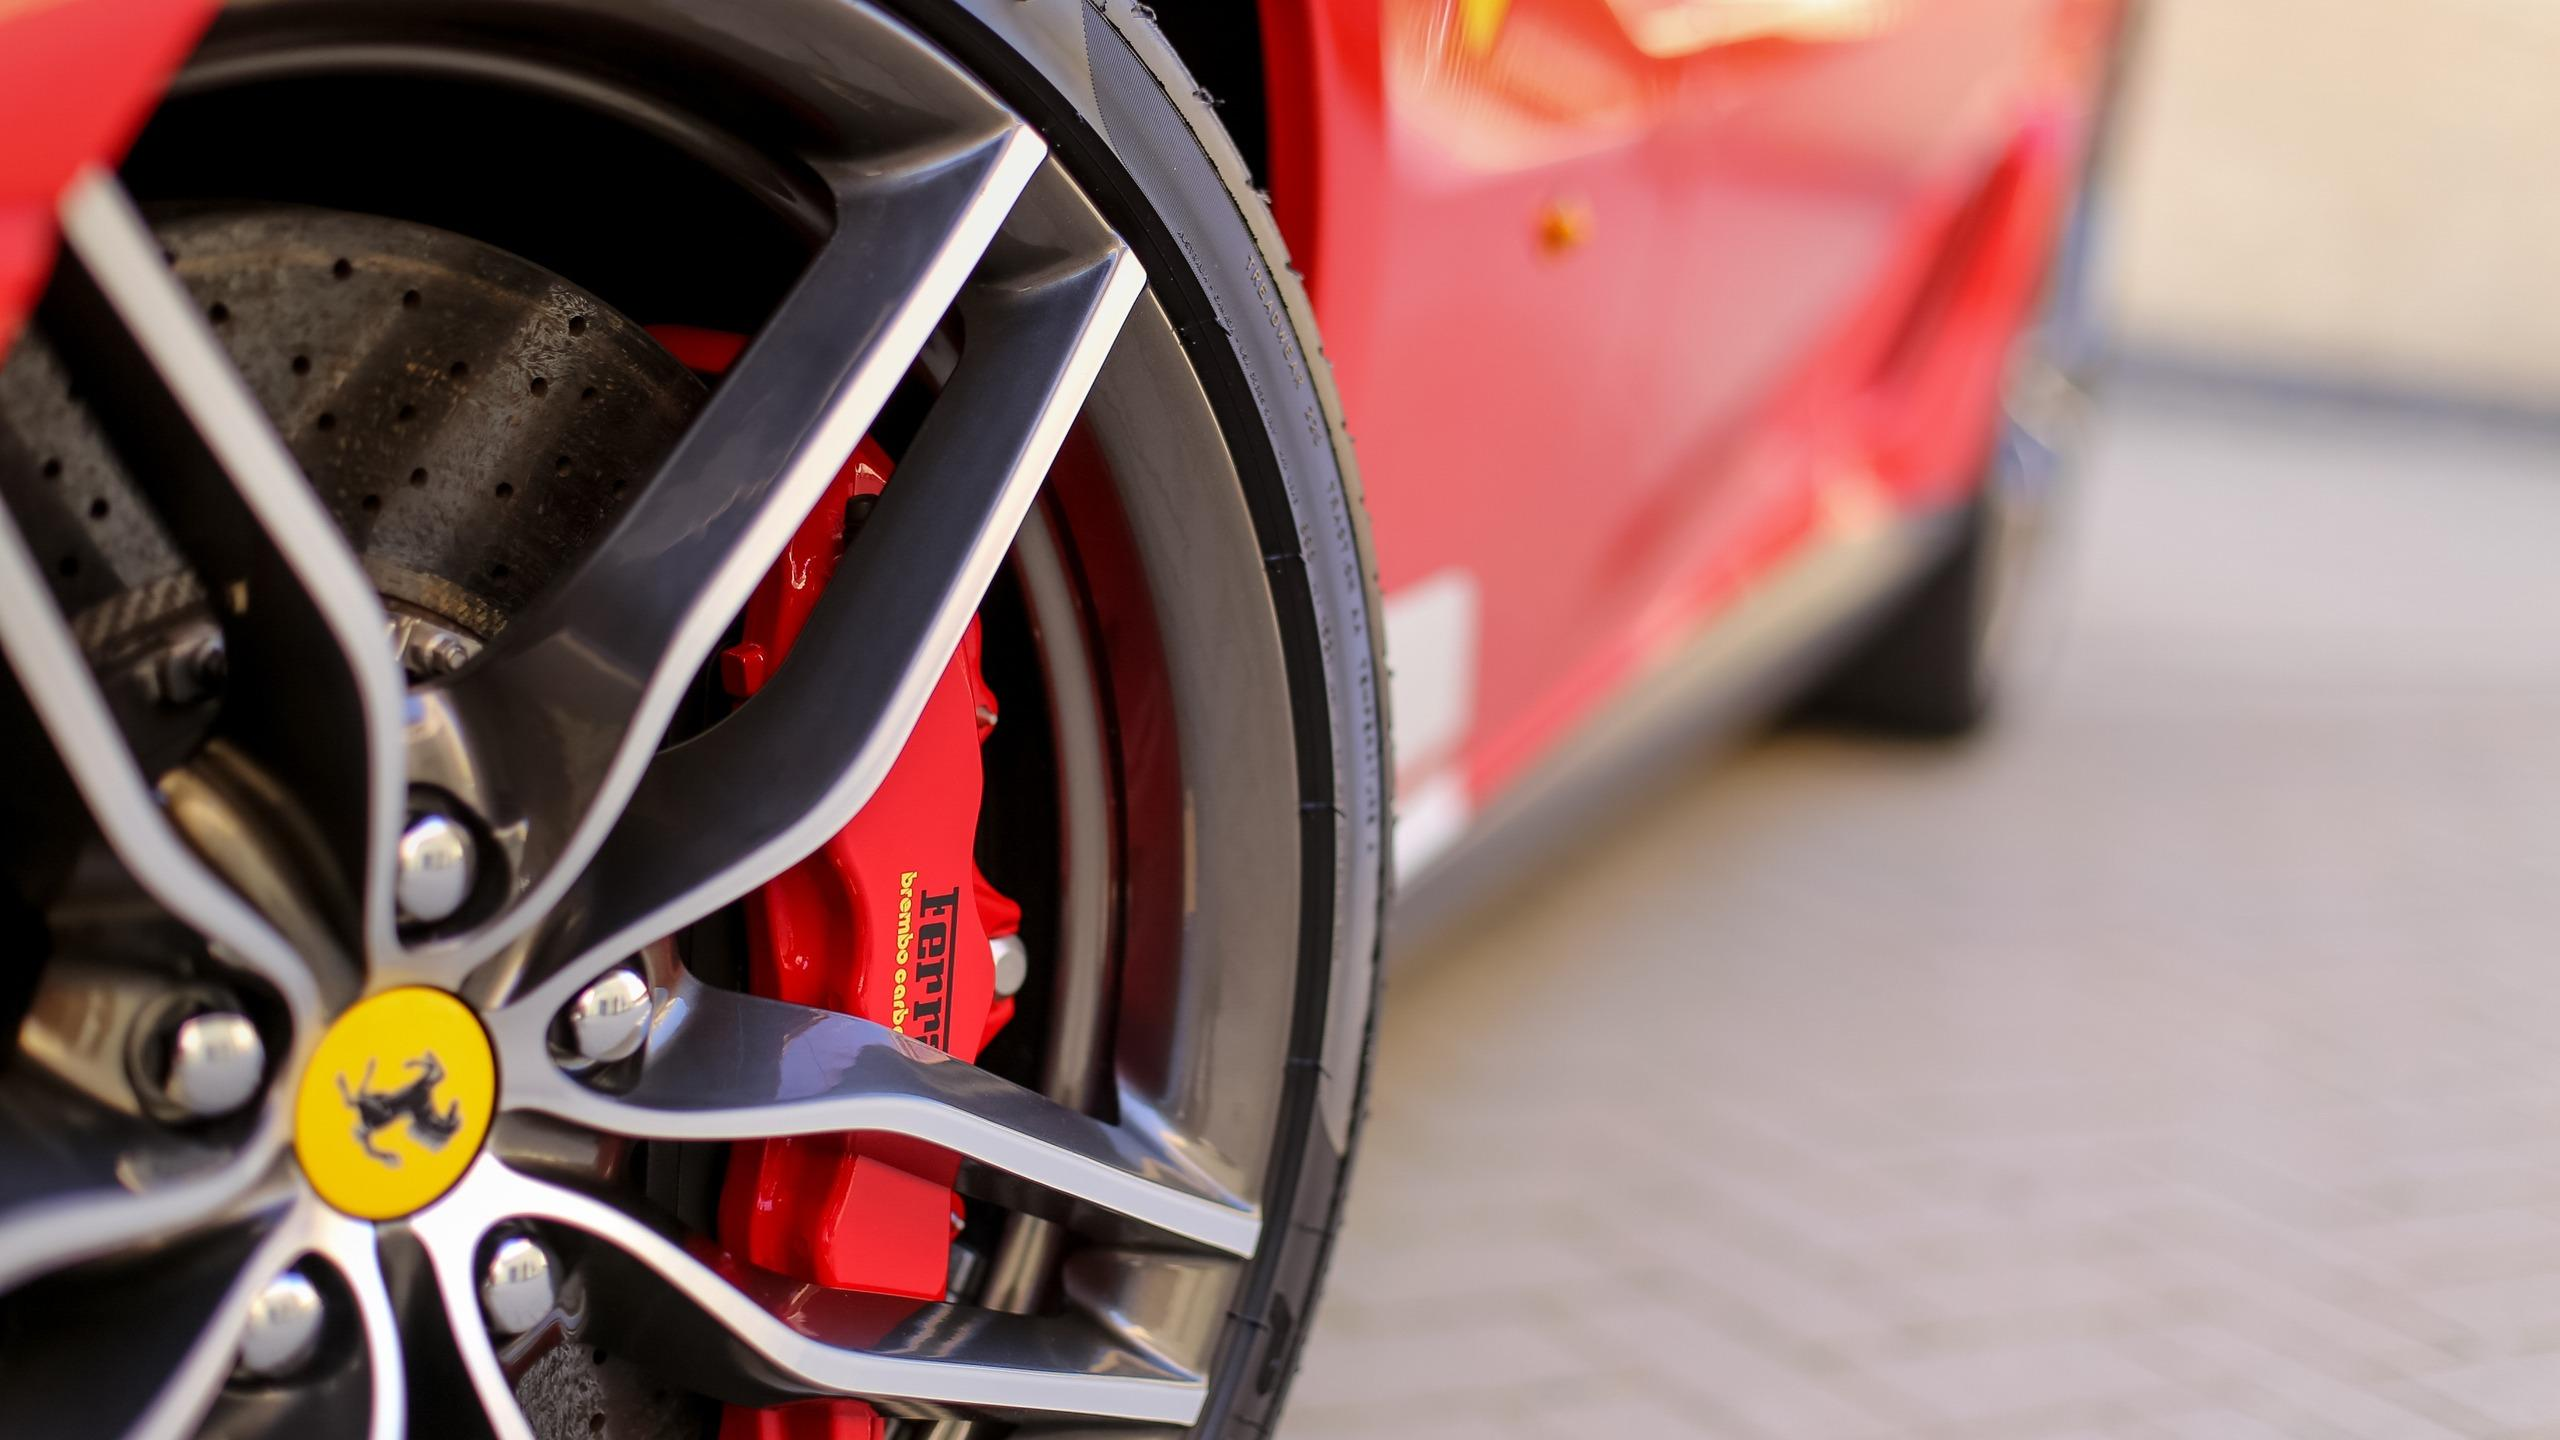 Download wallpapers 2560x1440 ferrari, tire, wheel, logo widescreen